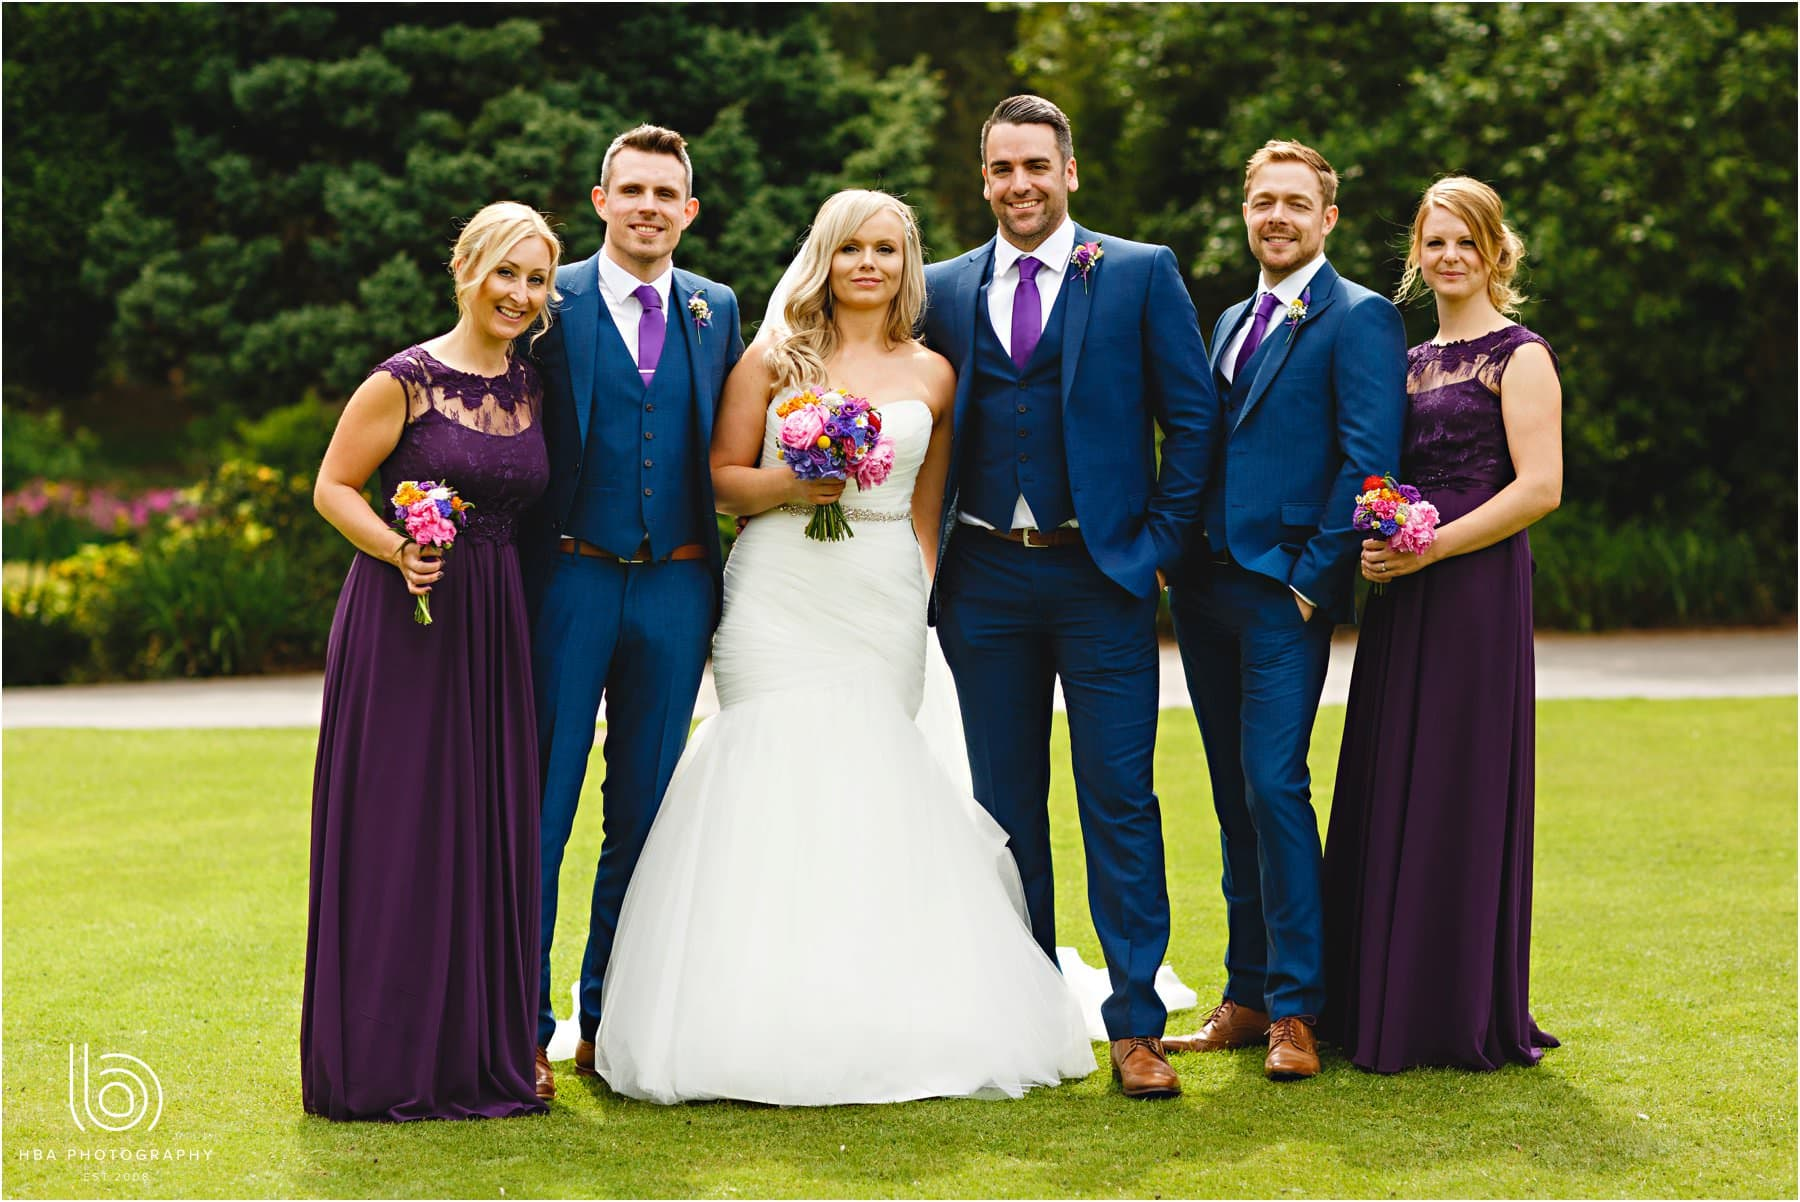 The bride & groom with their wedding party